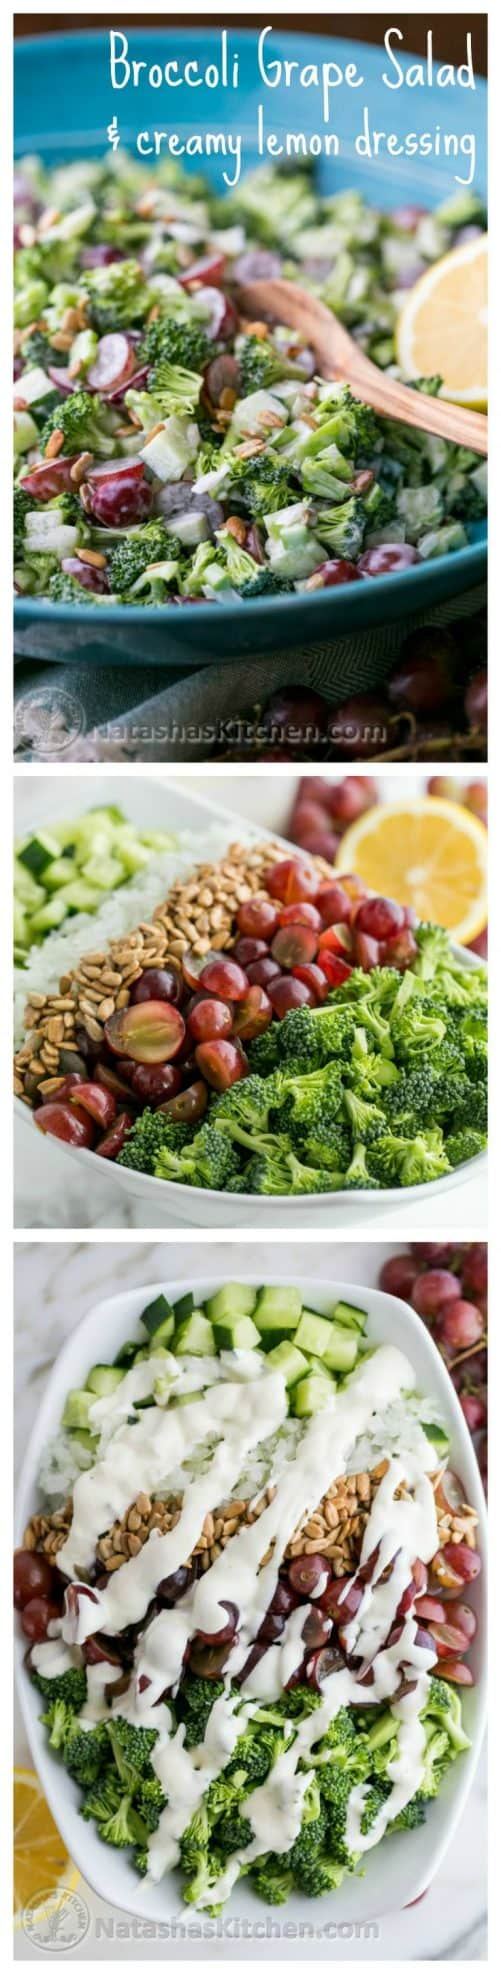 Healthy and Meatless Green Foods For St Patrick's Day